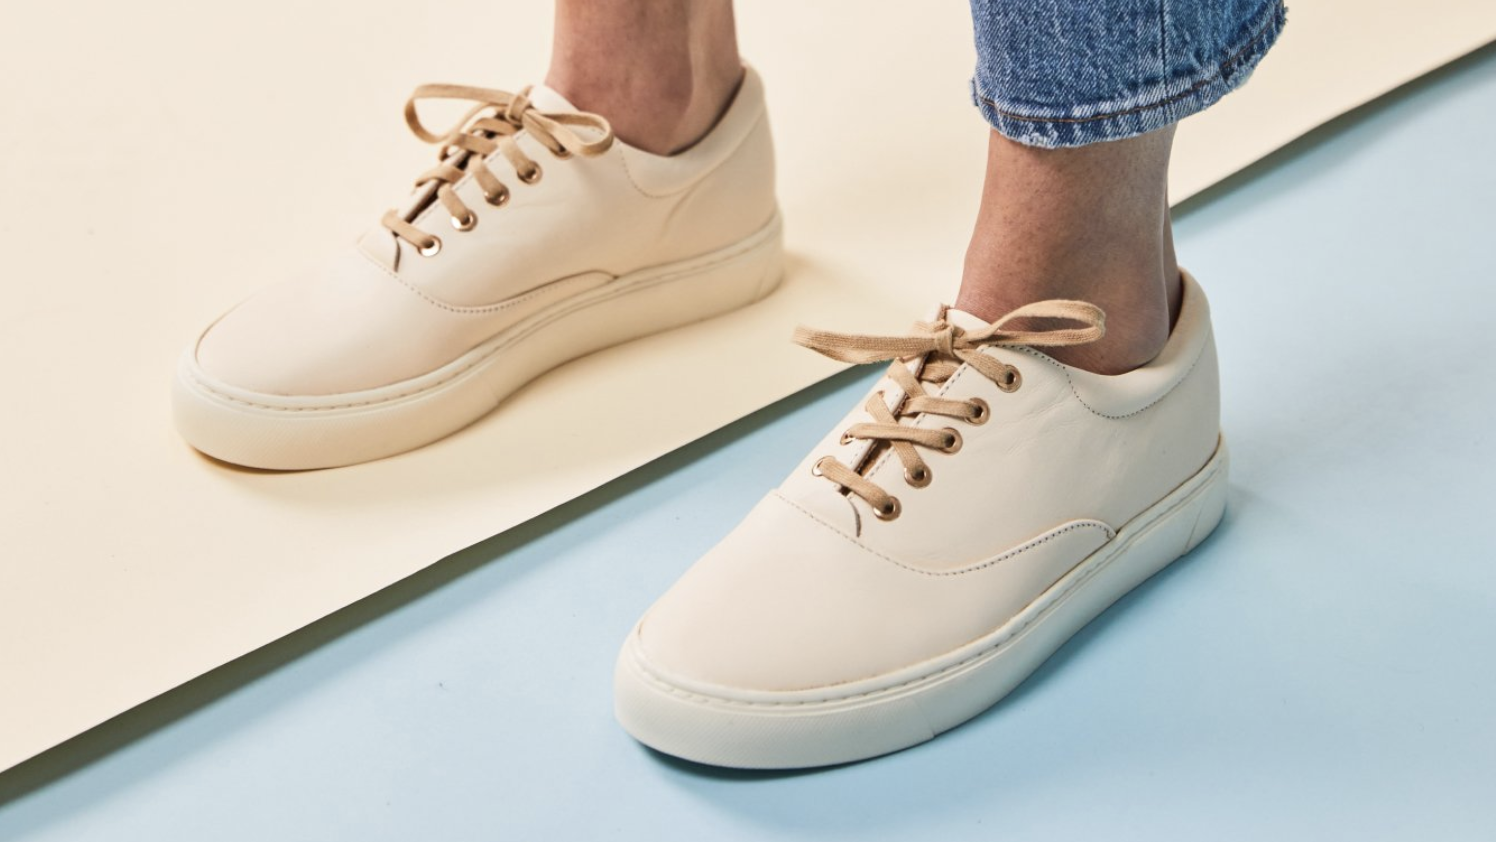 model wearing cream-colored sneakers from Nisolo